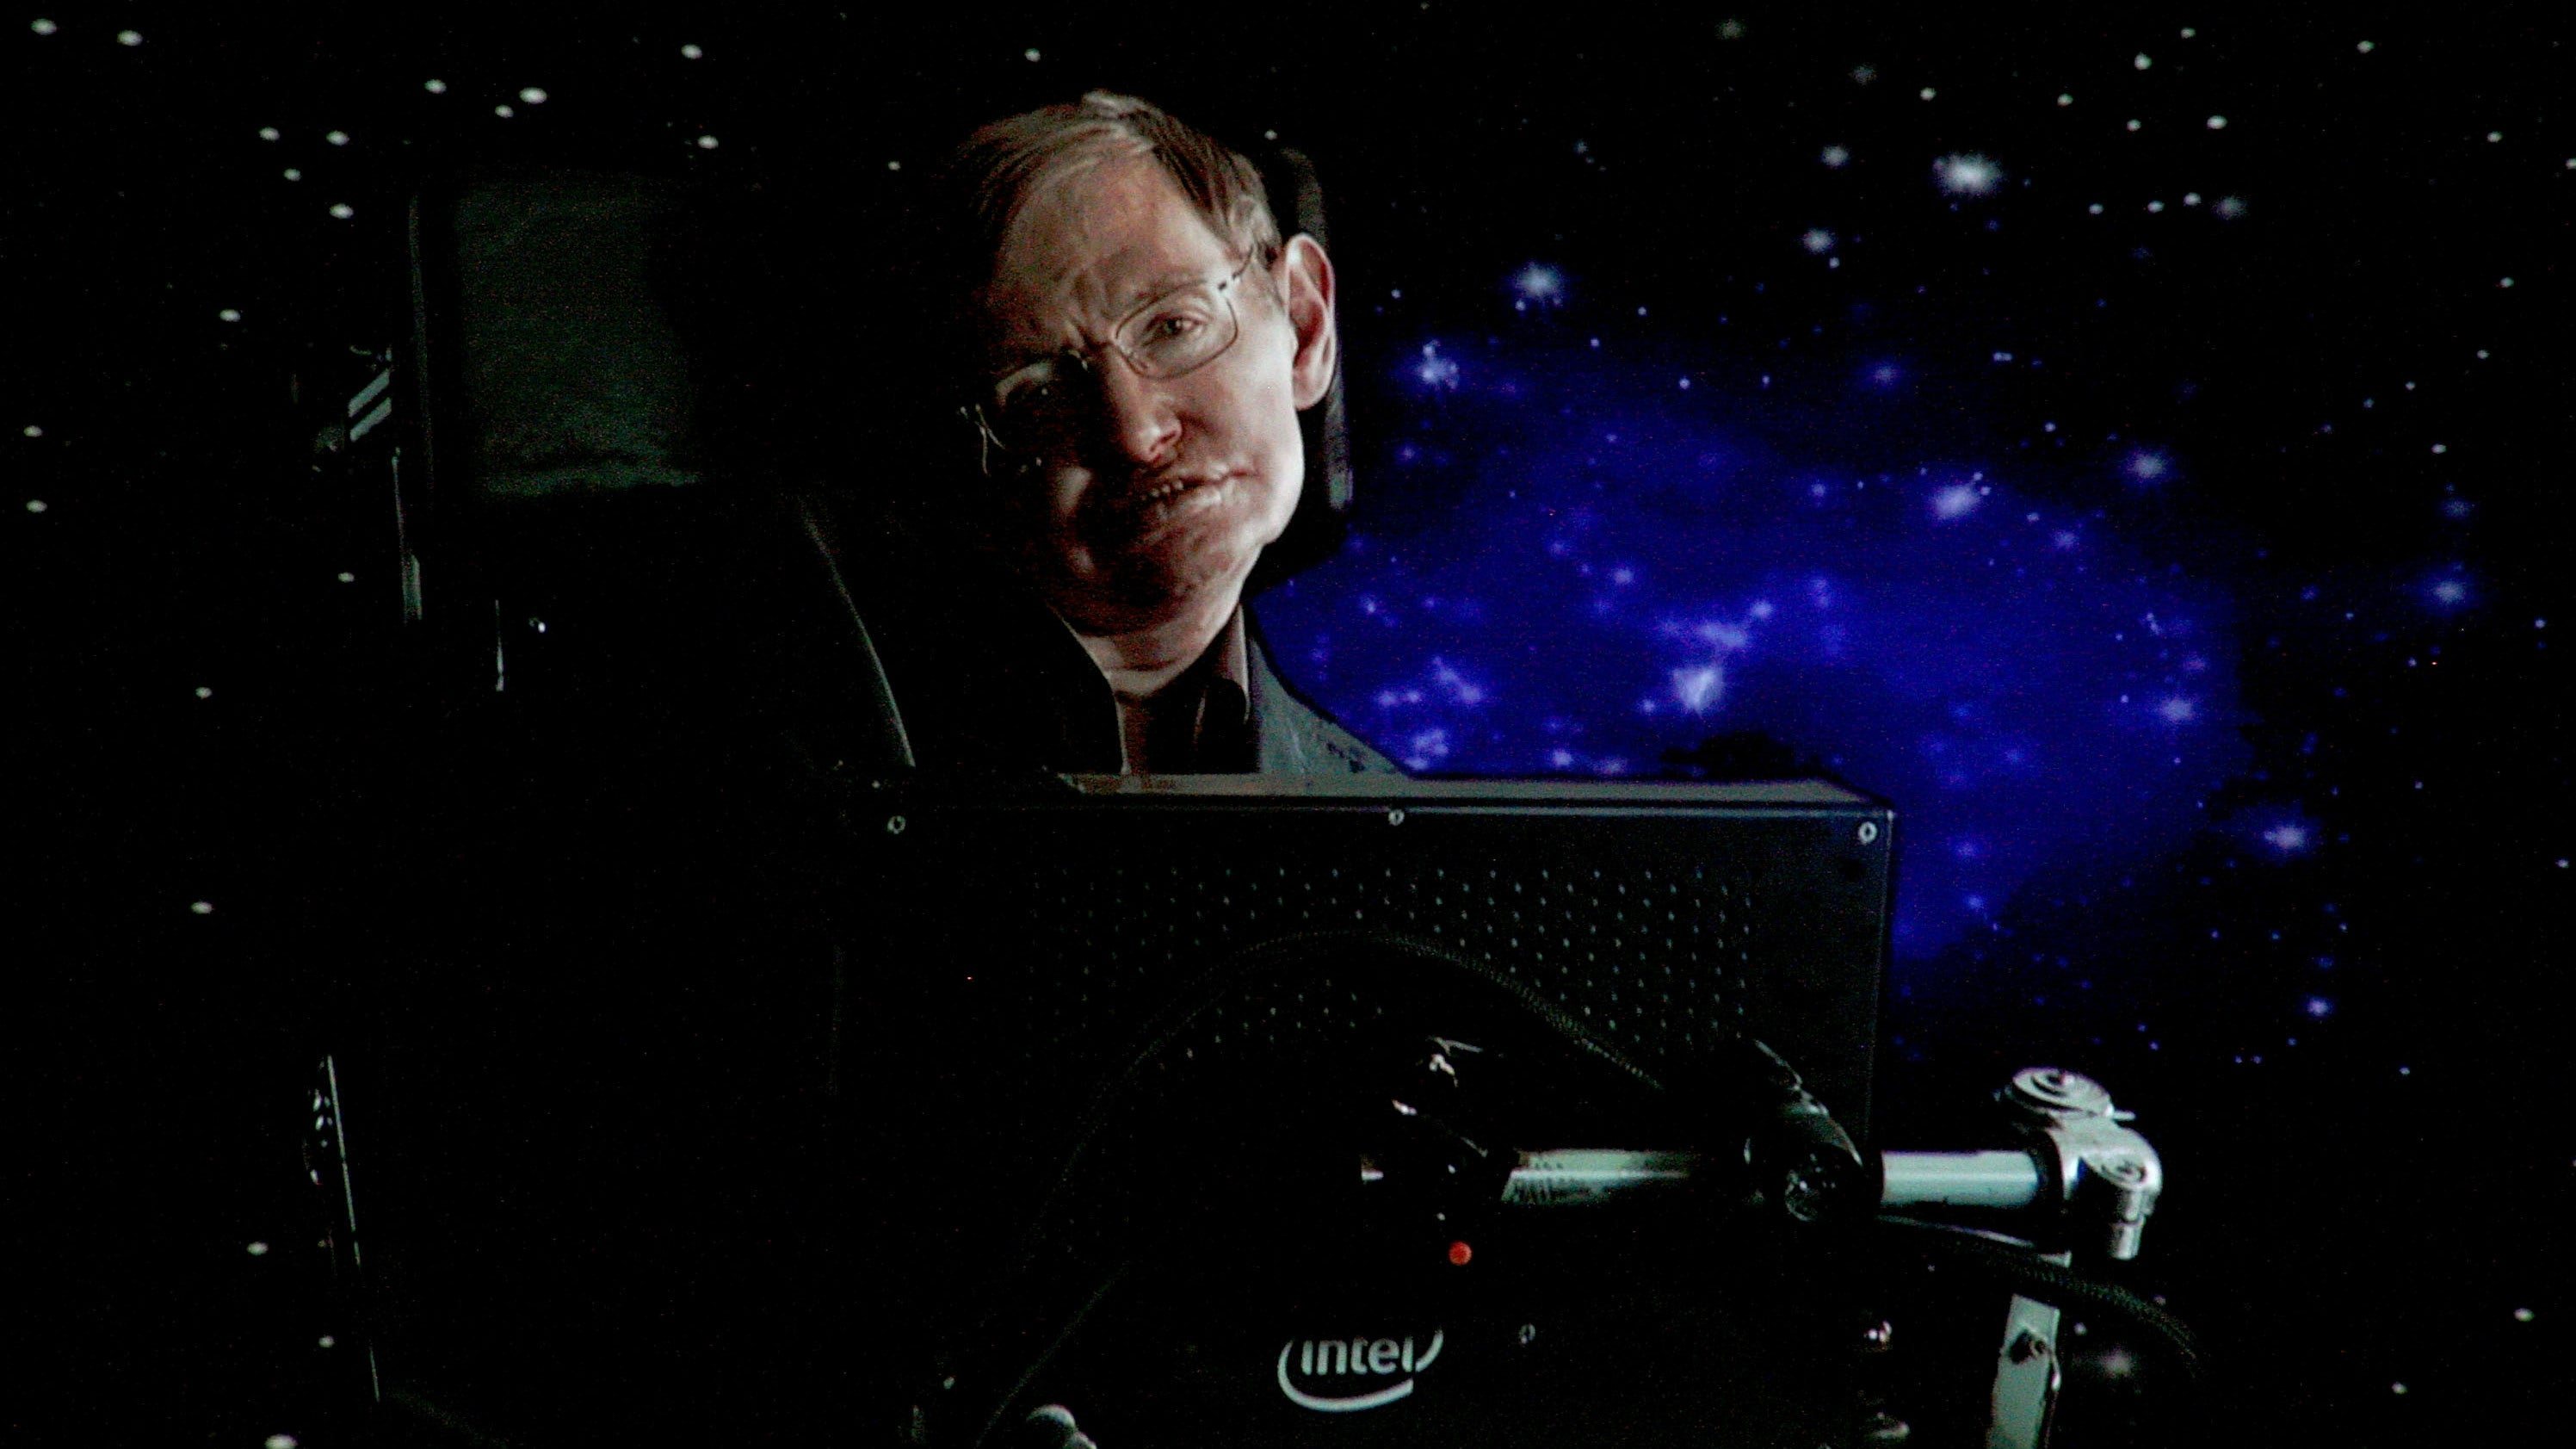 Stephen Hawking's Wheelchair And Papers Are Up For Auction, And We Hope They Land In Good Hands